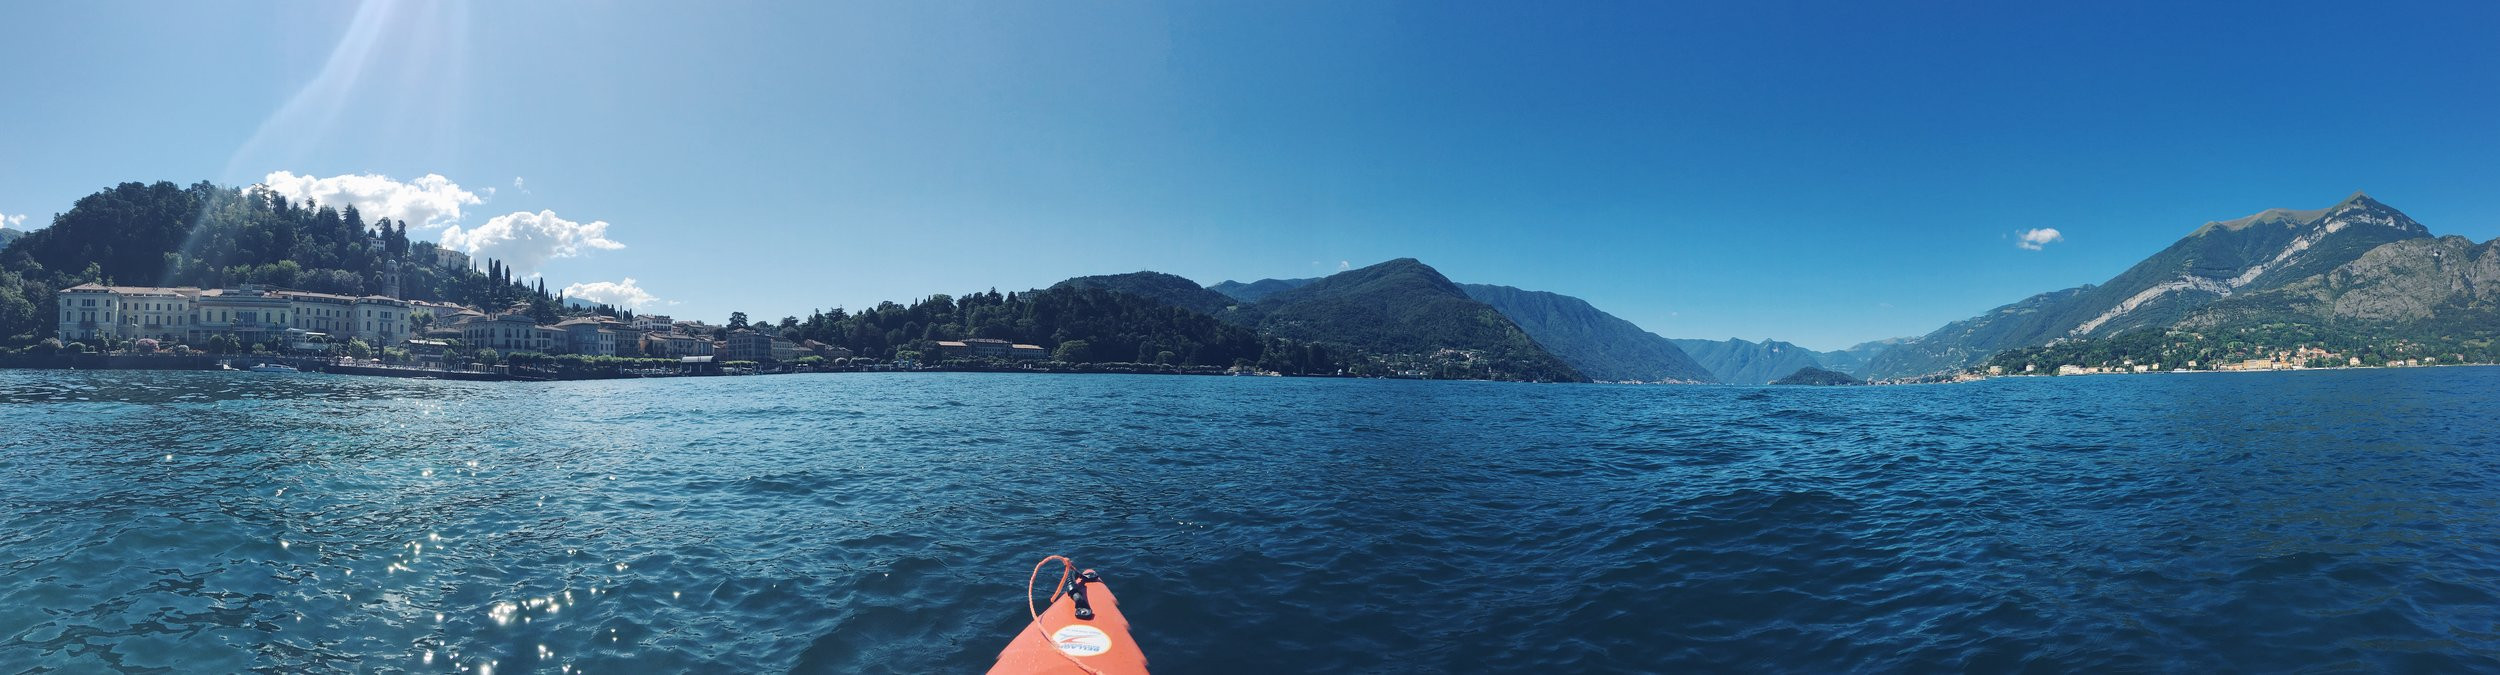 Kayaking Lake Como Lost In Love Photography